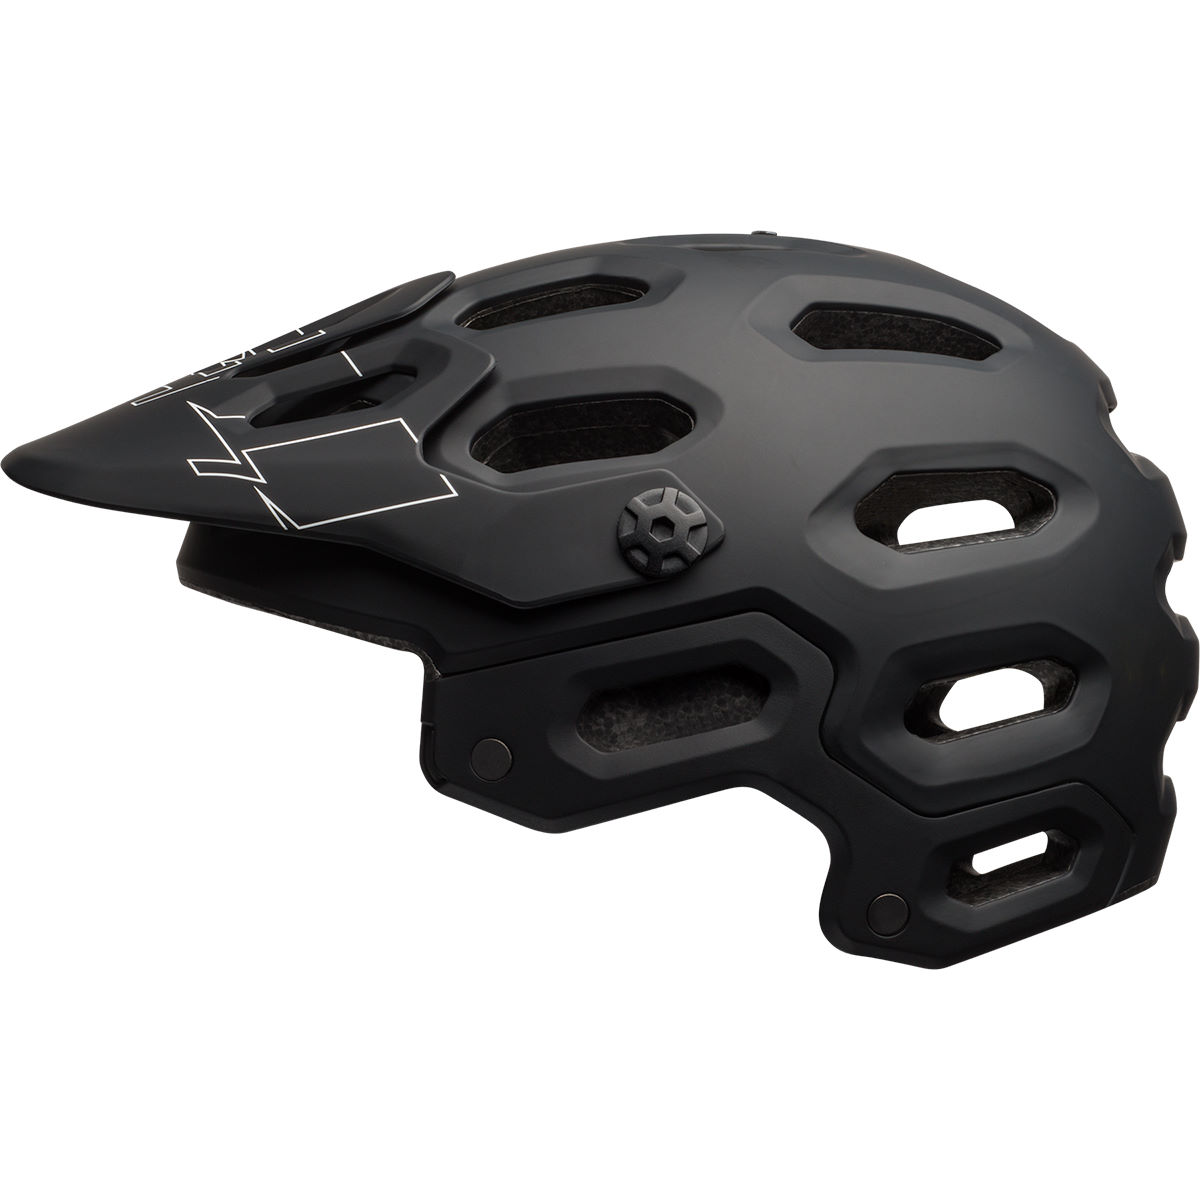 Casque Bell Super 3 - S Matte Black/White Casques VTT